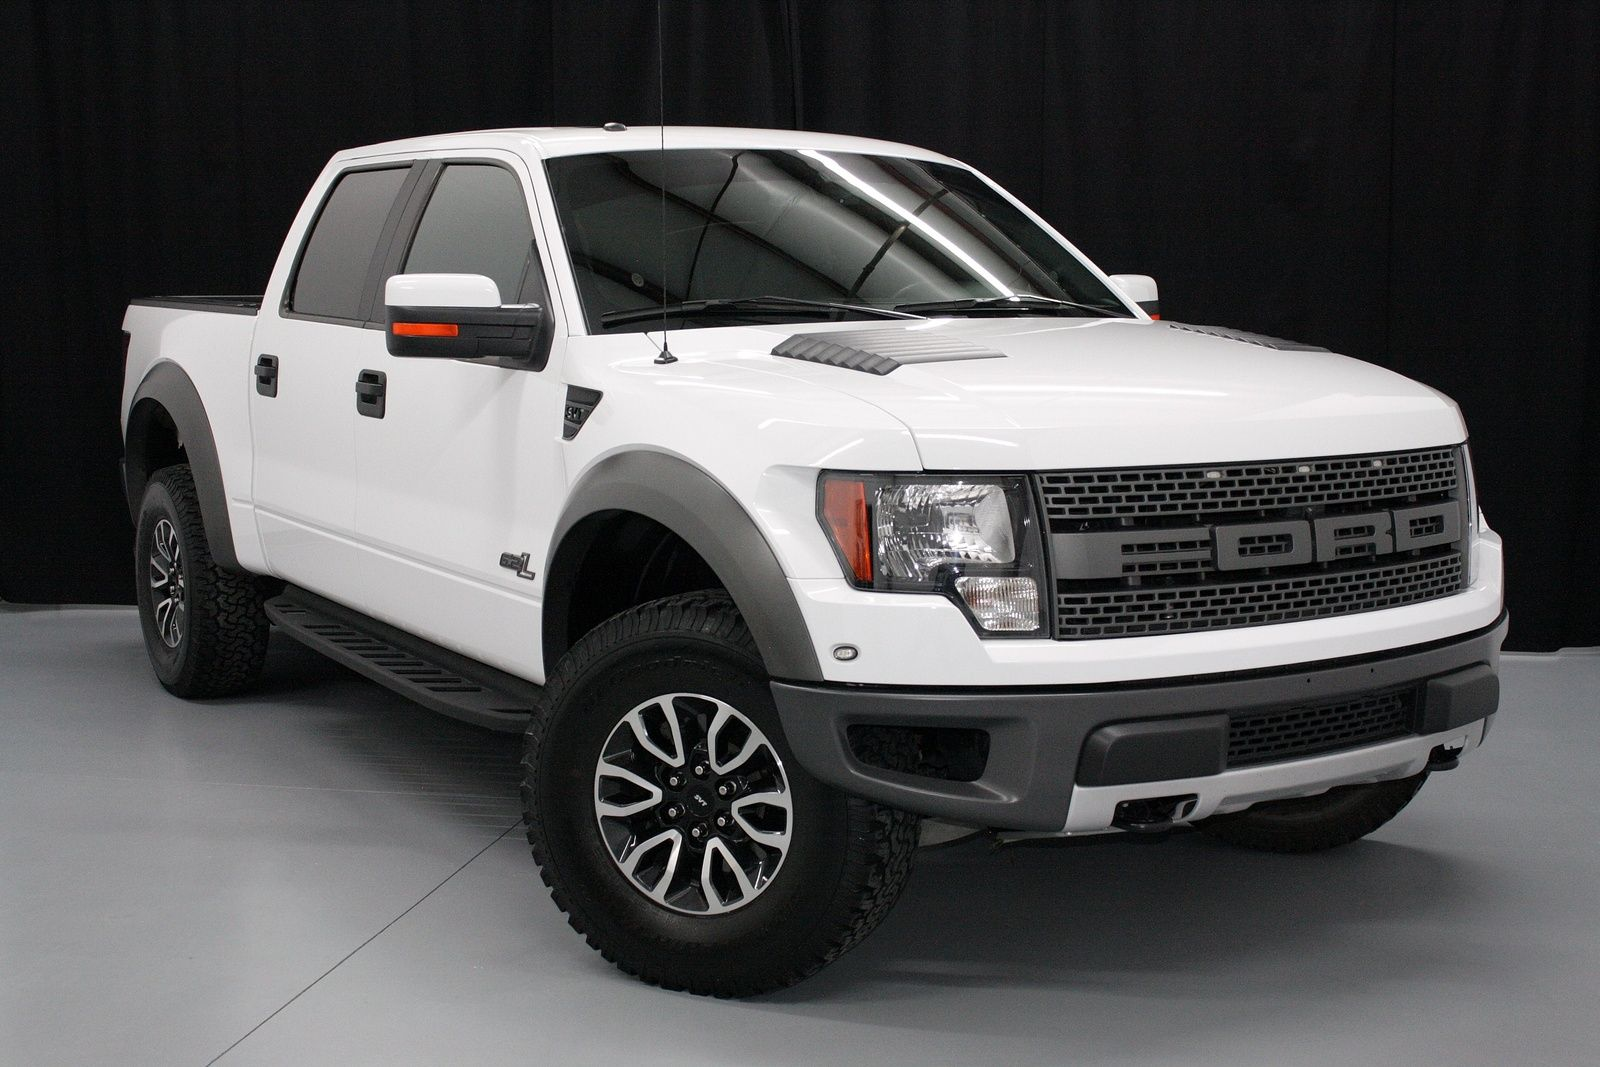 Best 25 ford raptor mpg ideas only on pinterest 2013 ford raptor ford raptor grill and 2012 ford raptor